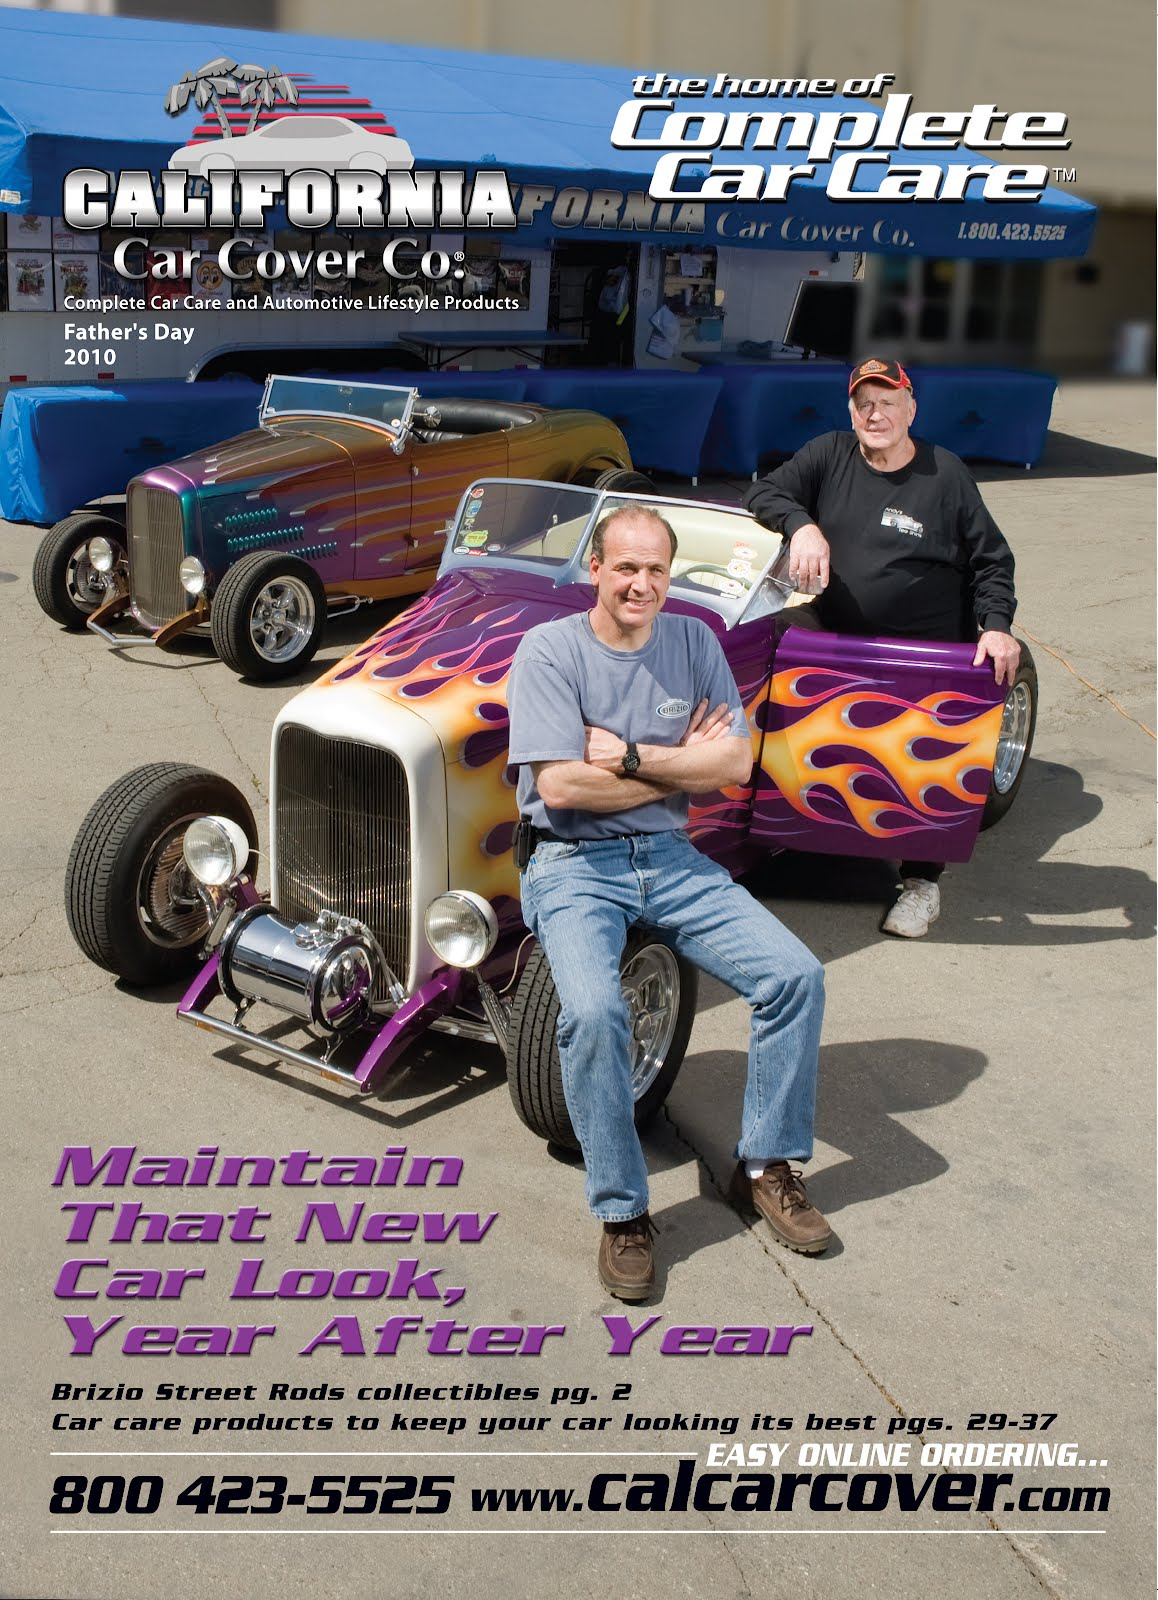 Covering Classic Cars March 2012